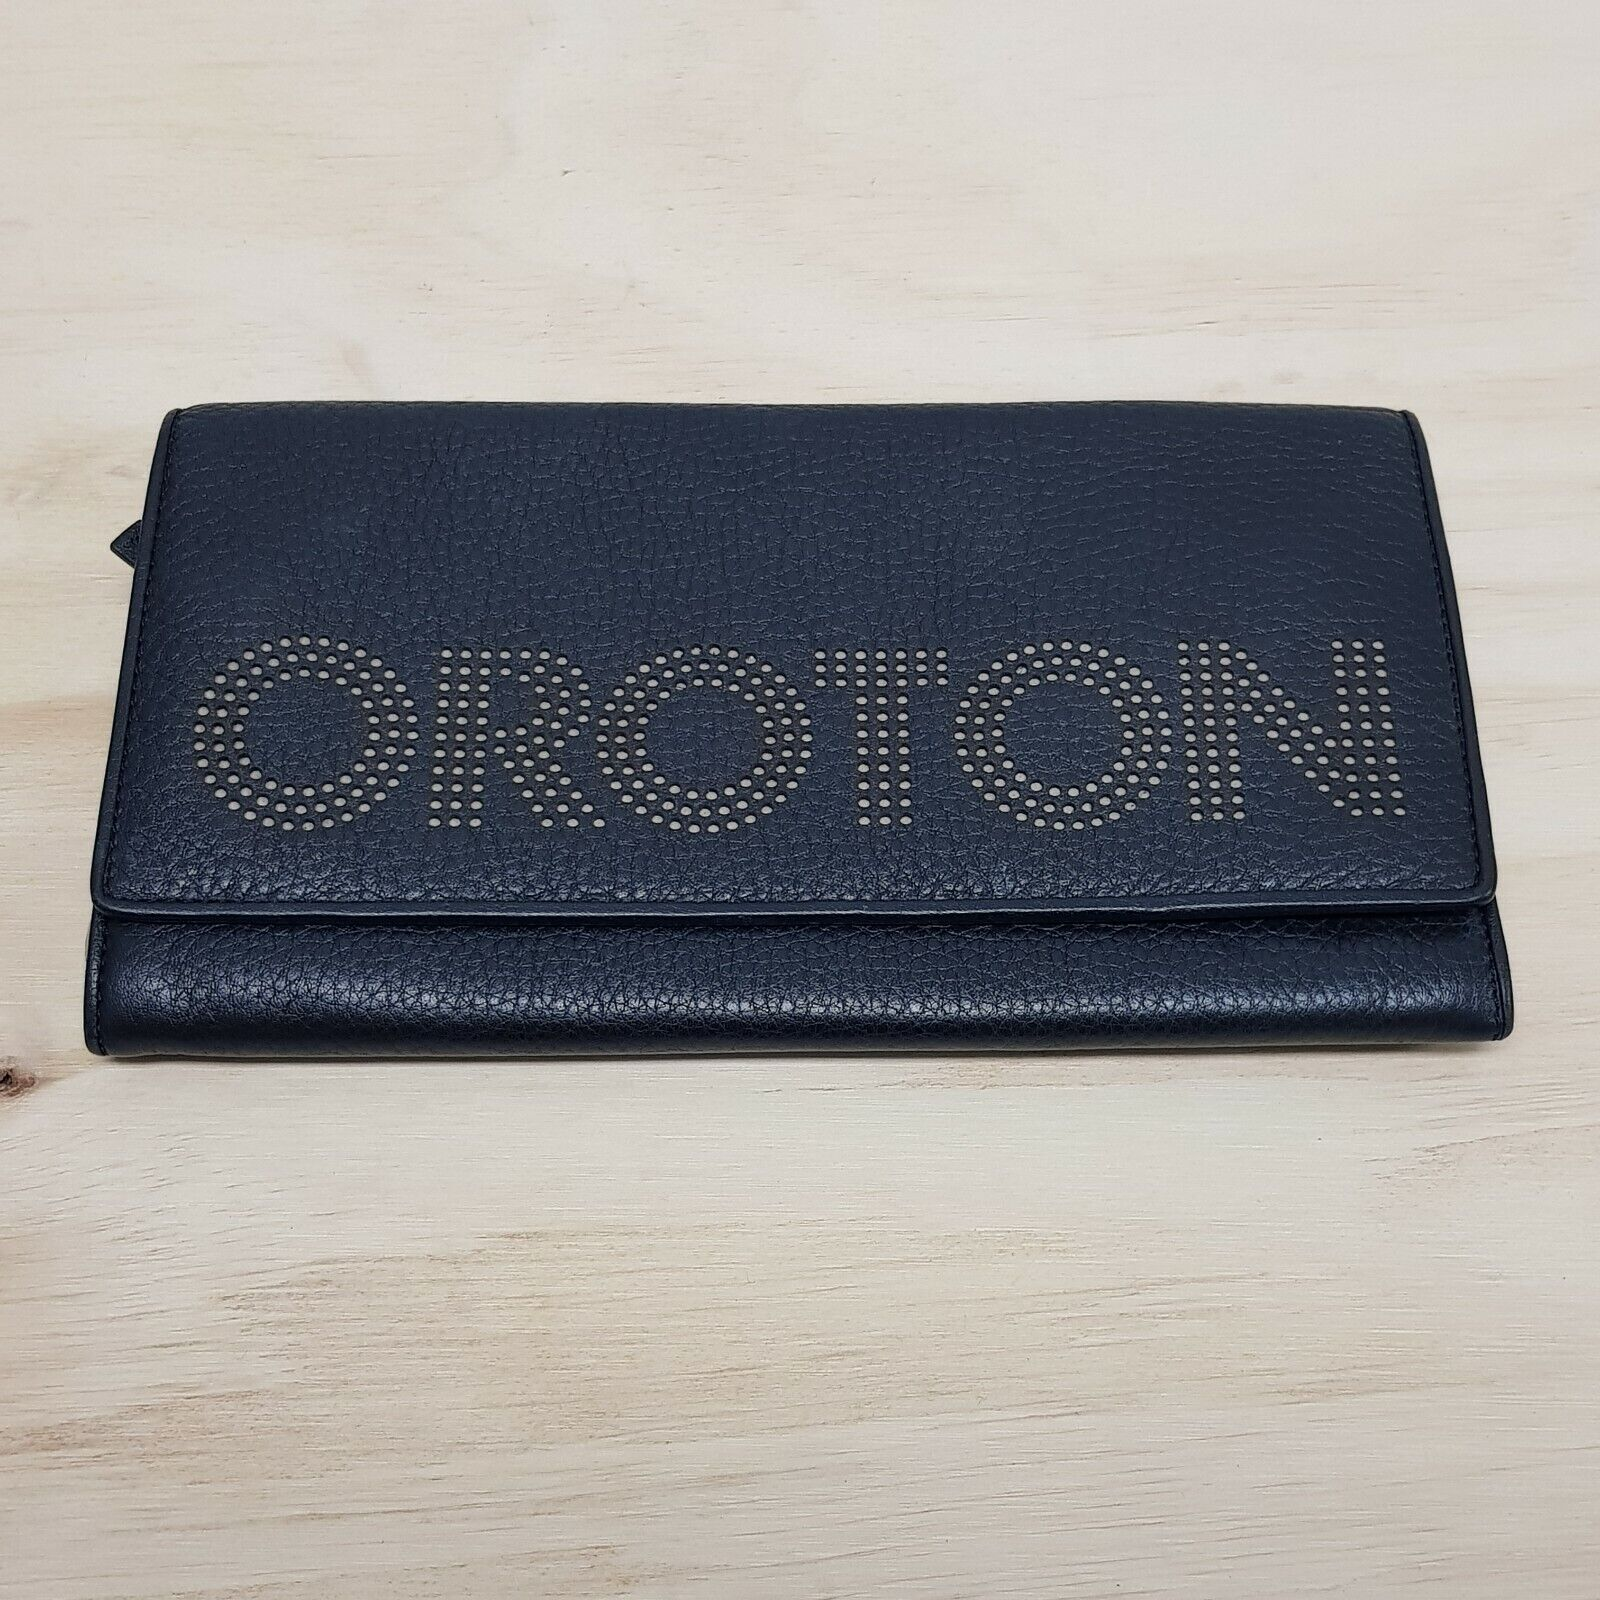 [ OROTON ] Womens Black Leather Travel Wallet RRP